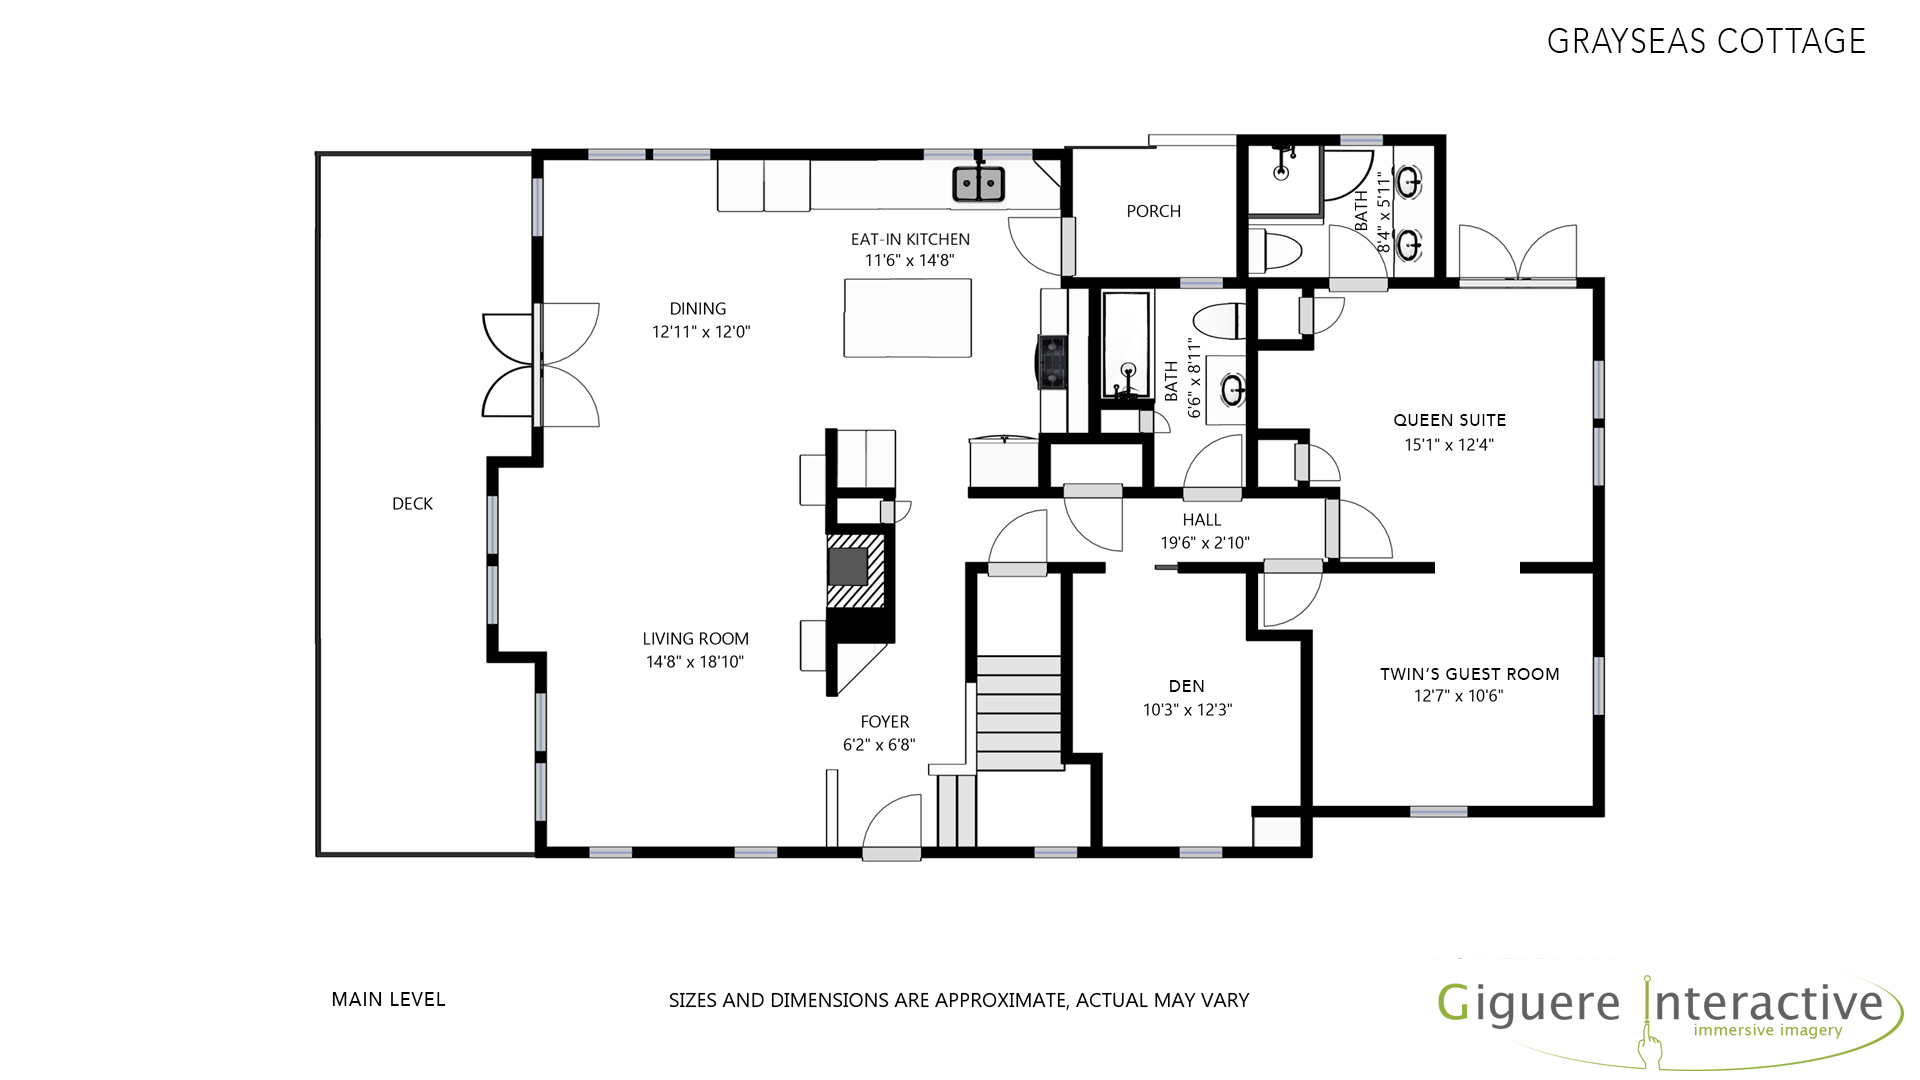 Floor Plan for GraySeas Cottage